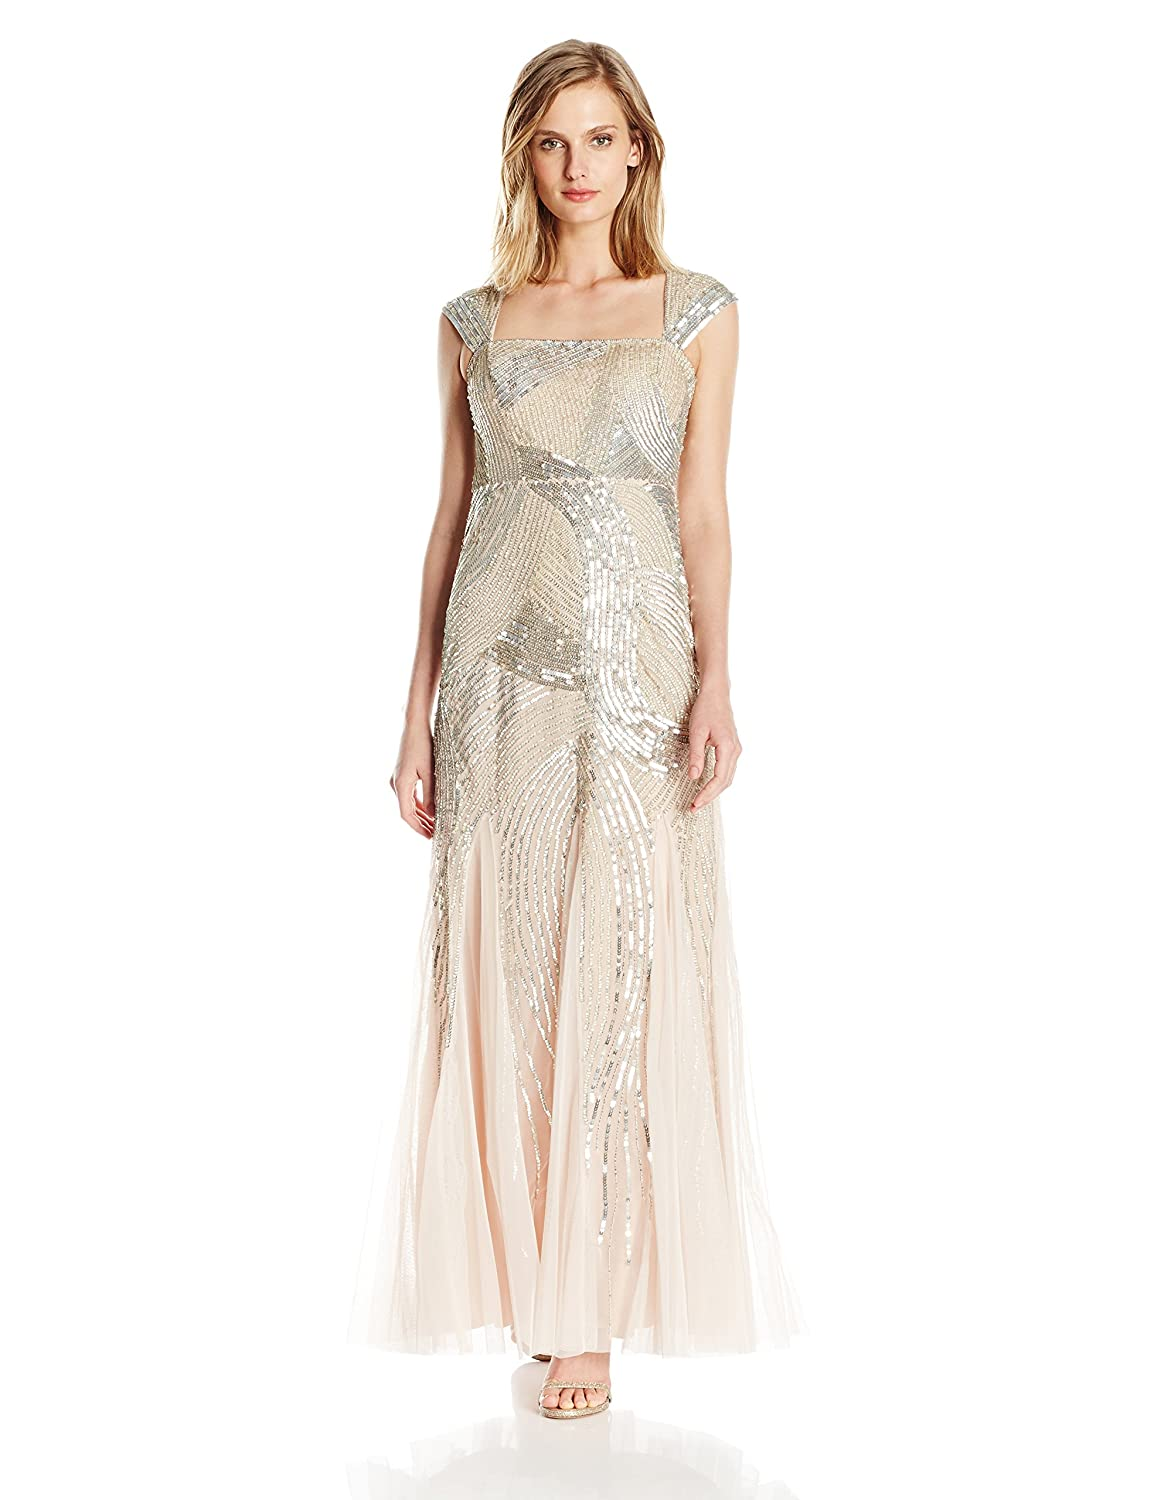 Vintage Inspired Bridesmaid Dresses Adrianna Papell Womens Petite Cap Sleeve Fully Beaded Gown $340.00 AT vintagedancer.com